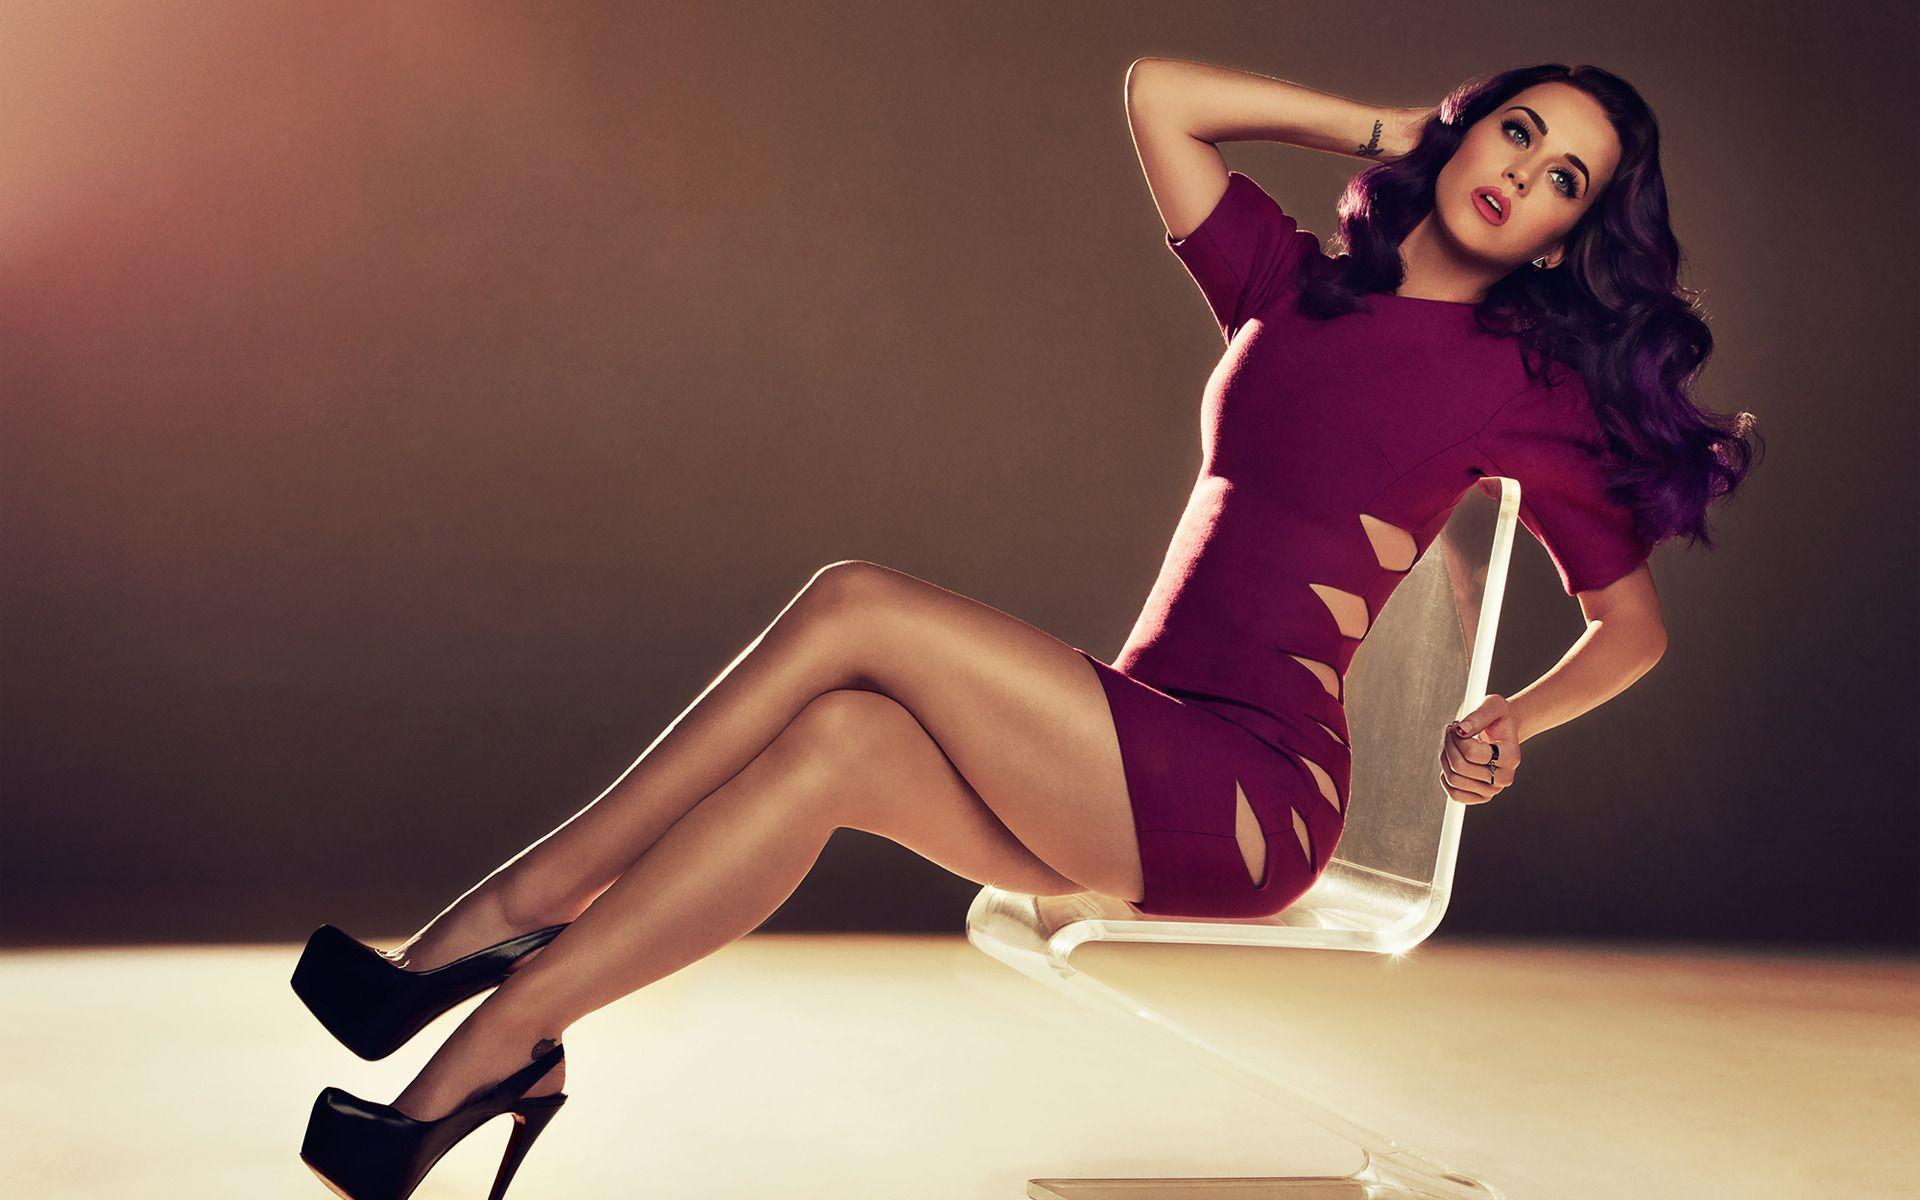 katy perry wallpaper 1080p - photo #7